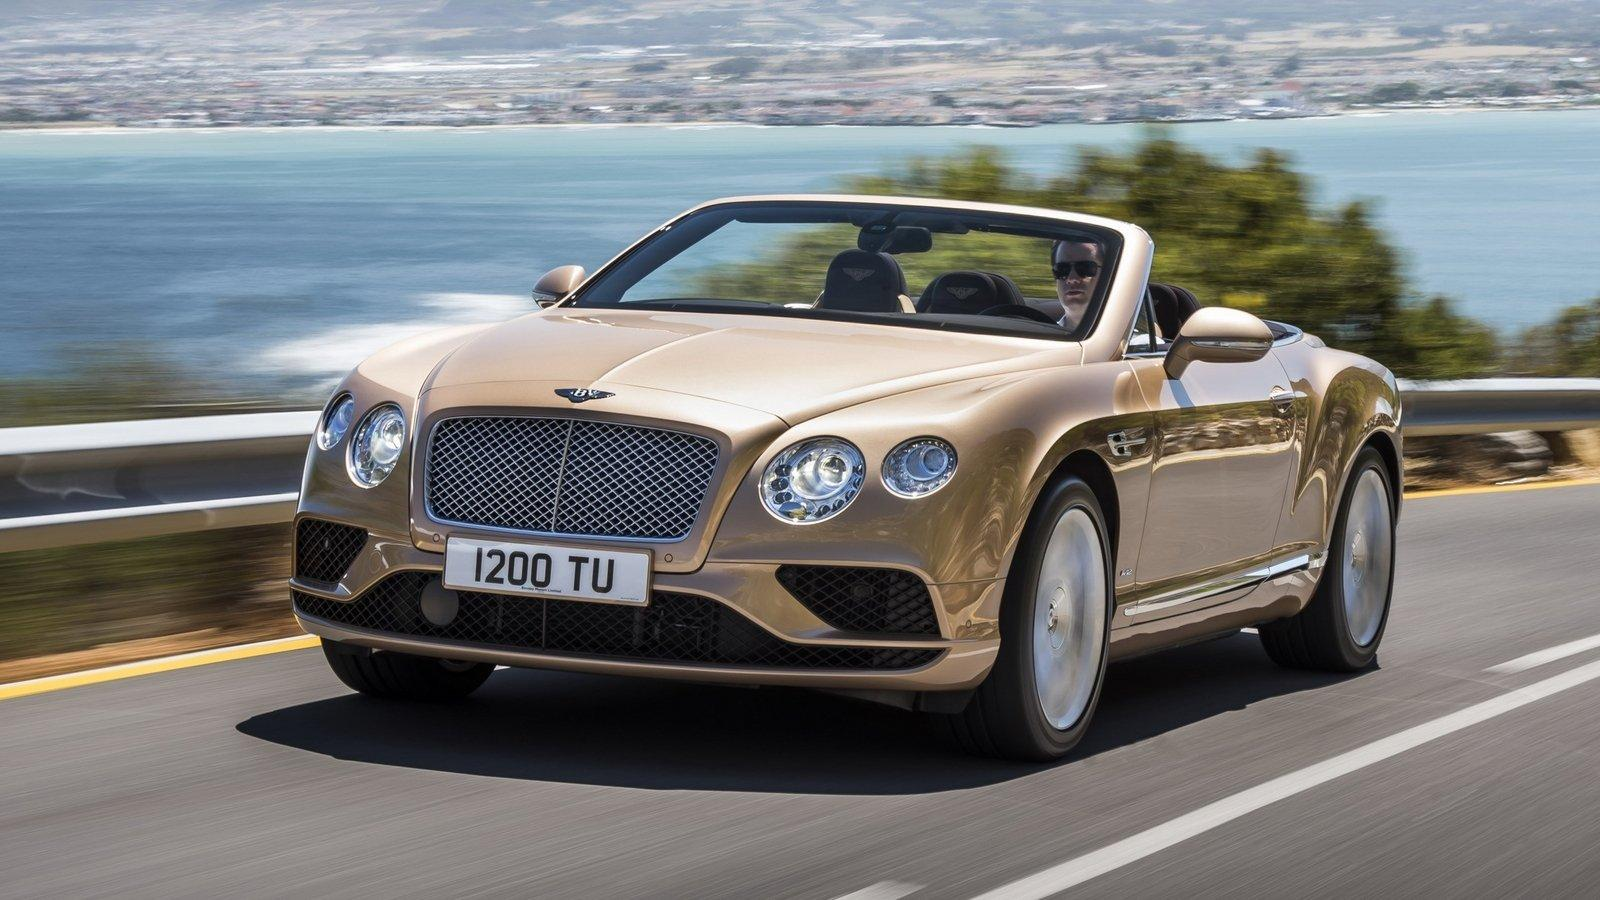 2016 Bentley Continental GT Convertible Pictures, Photos, Wallpapers